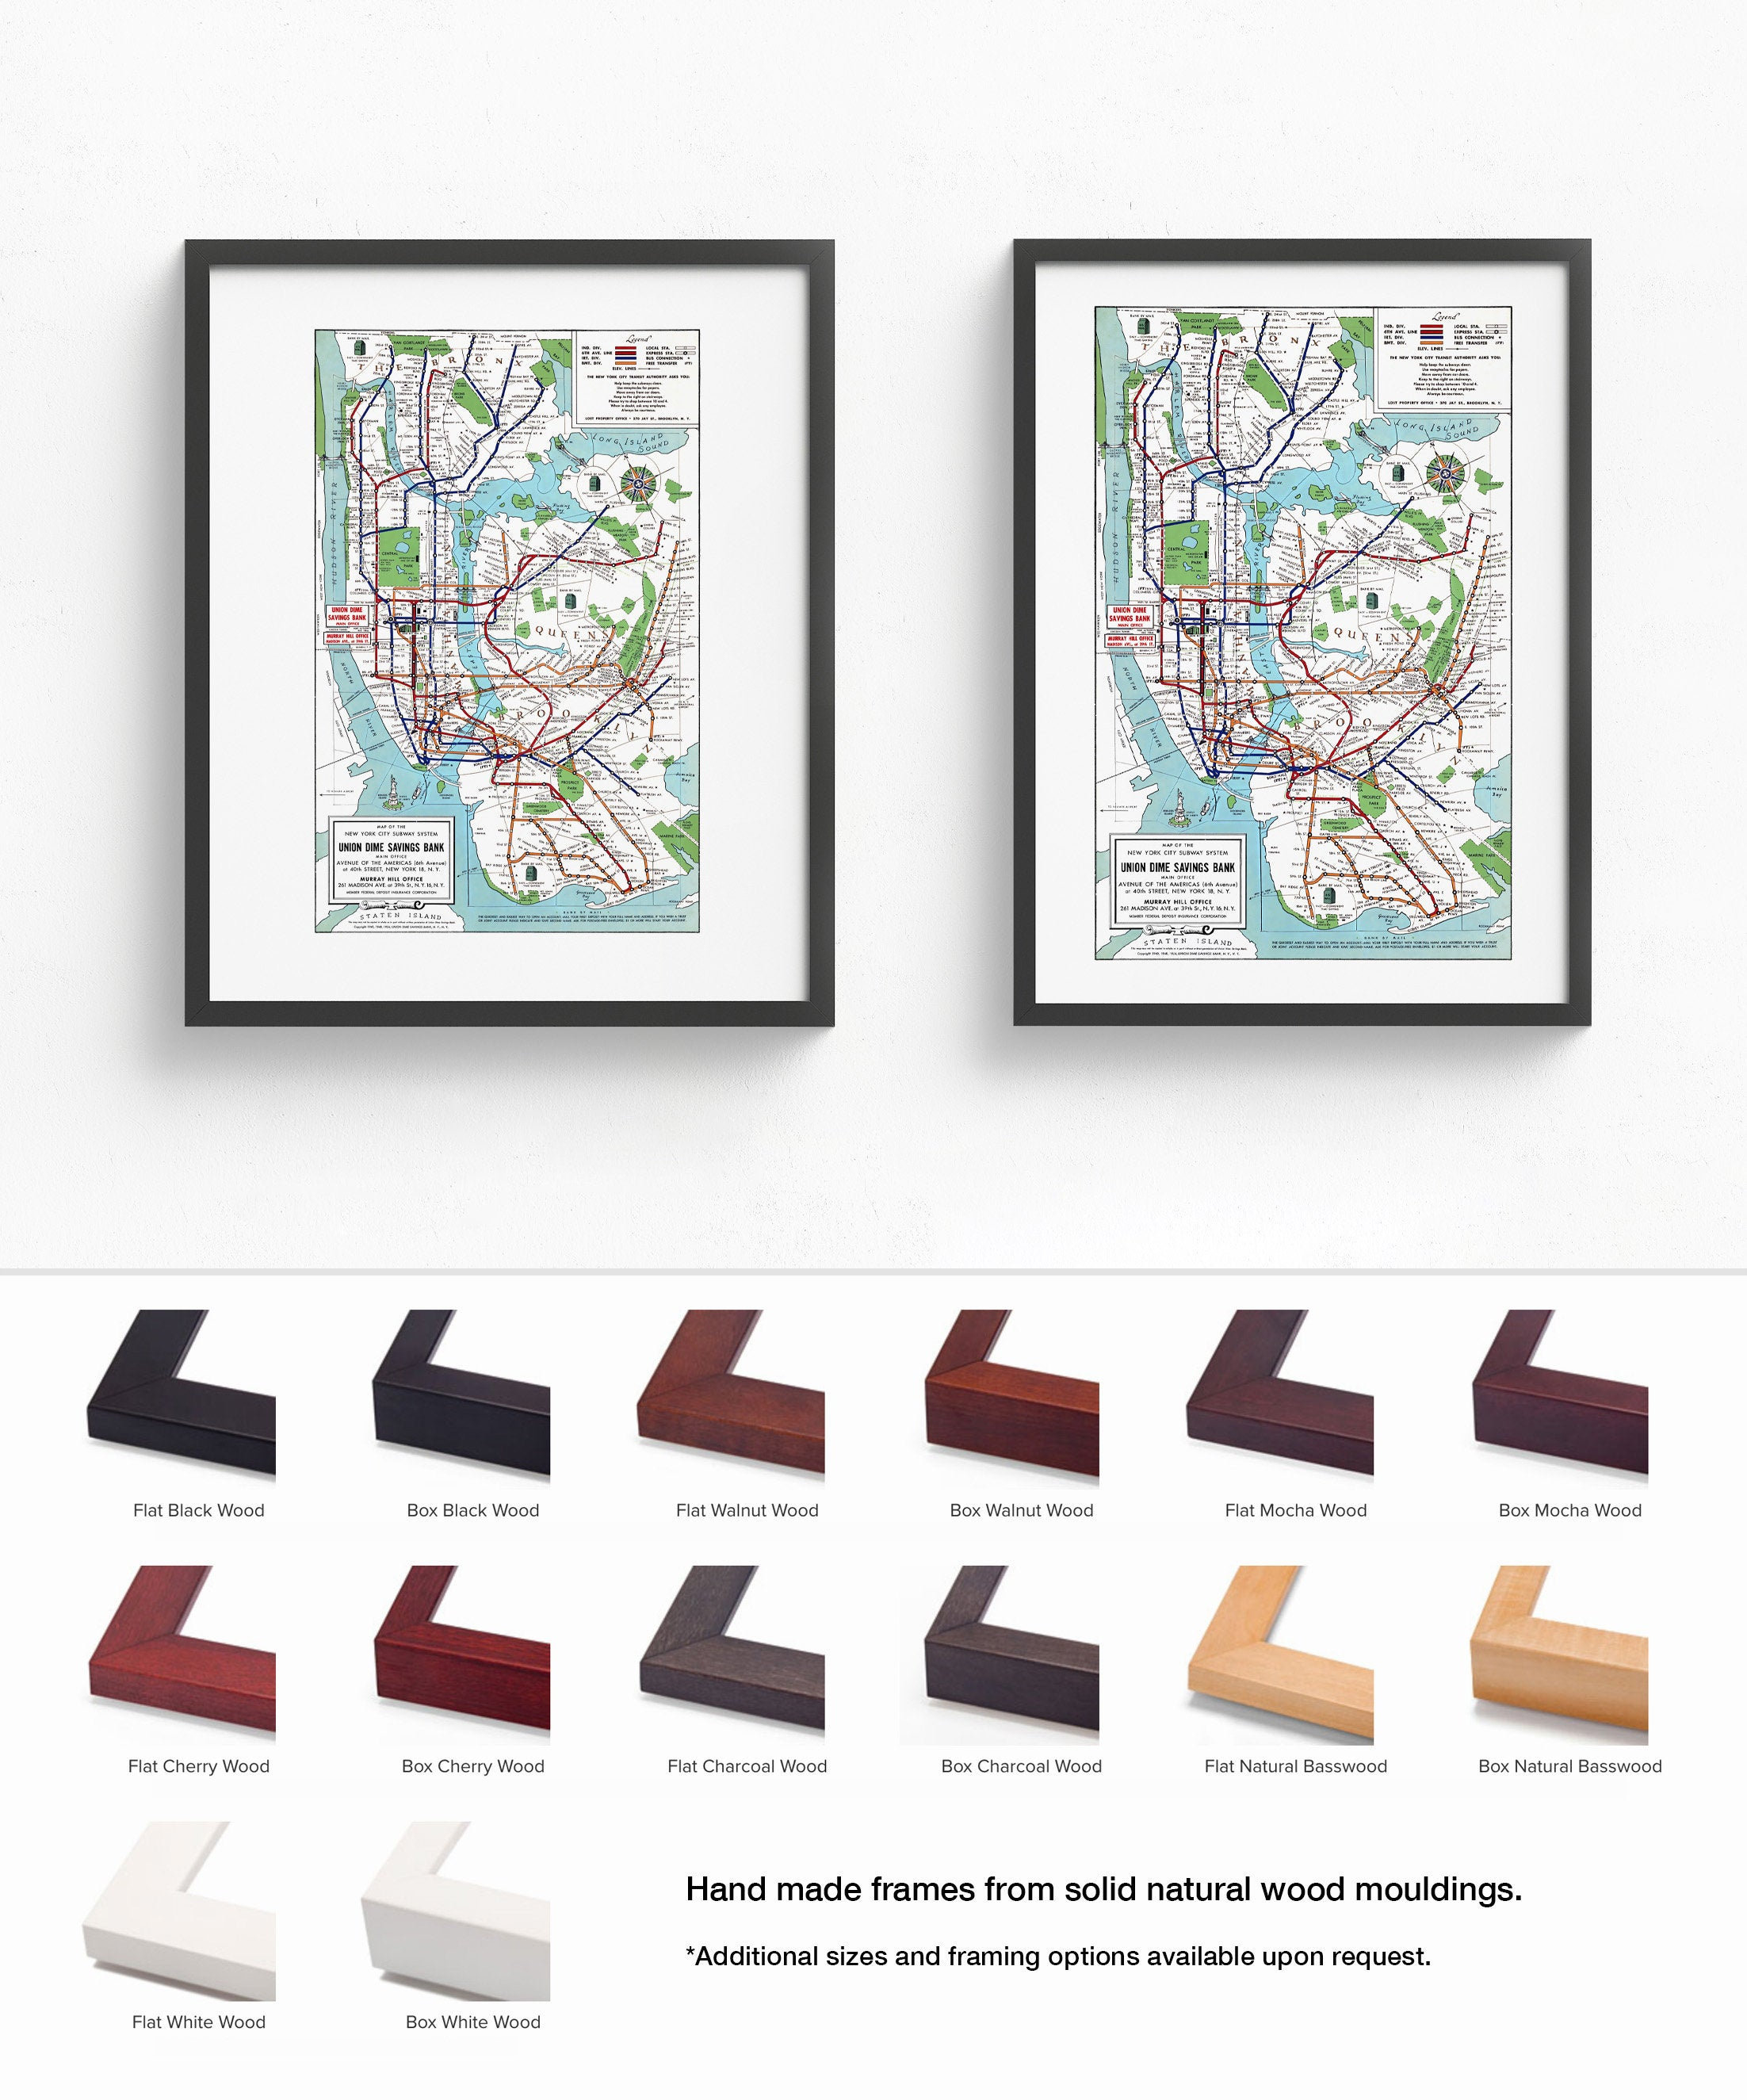 Framed New York Subway Map.New York City Subway Map Framed Wall Art